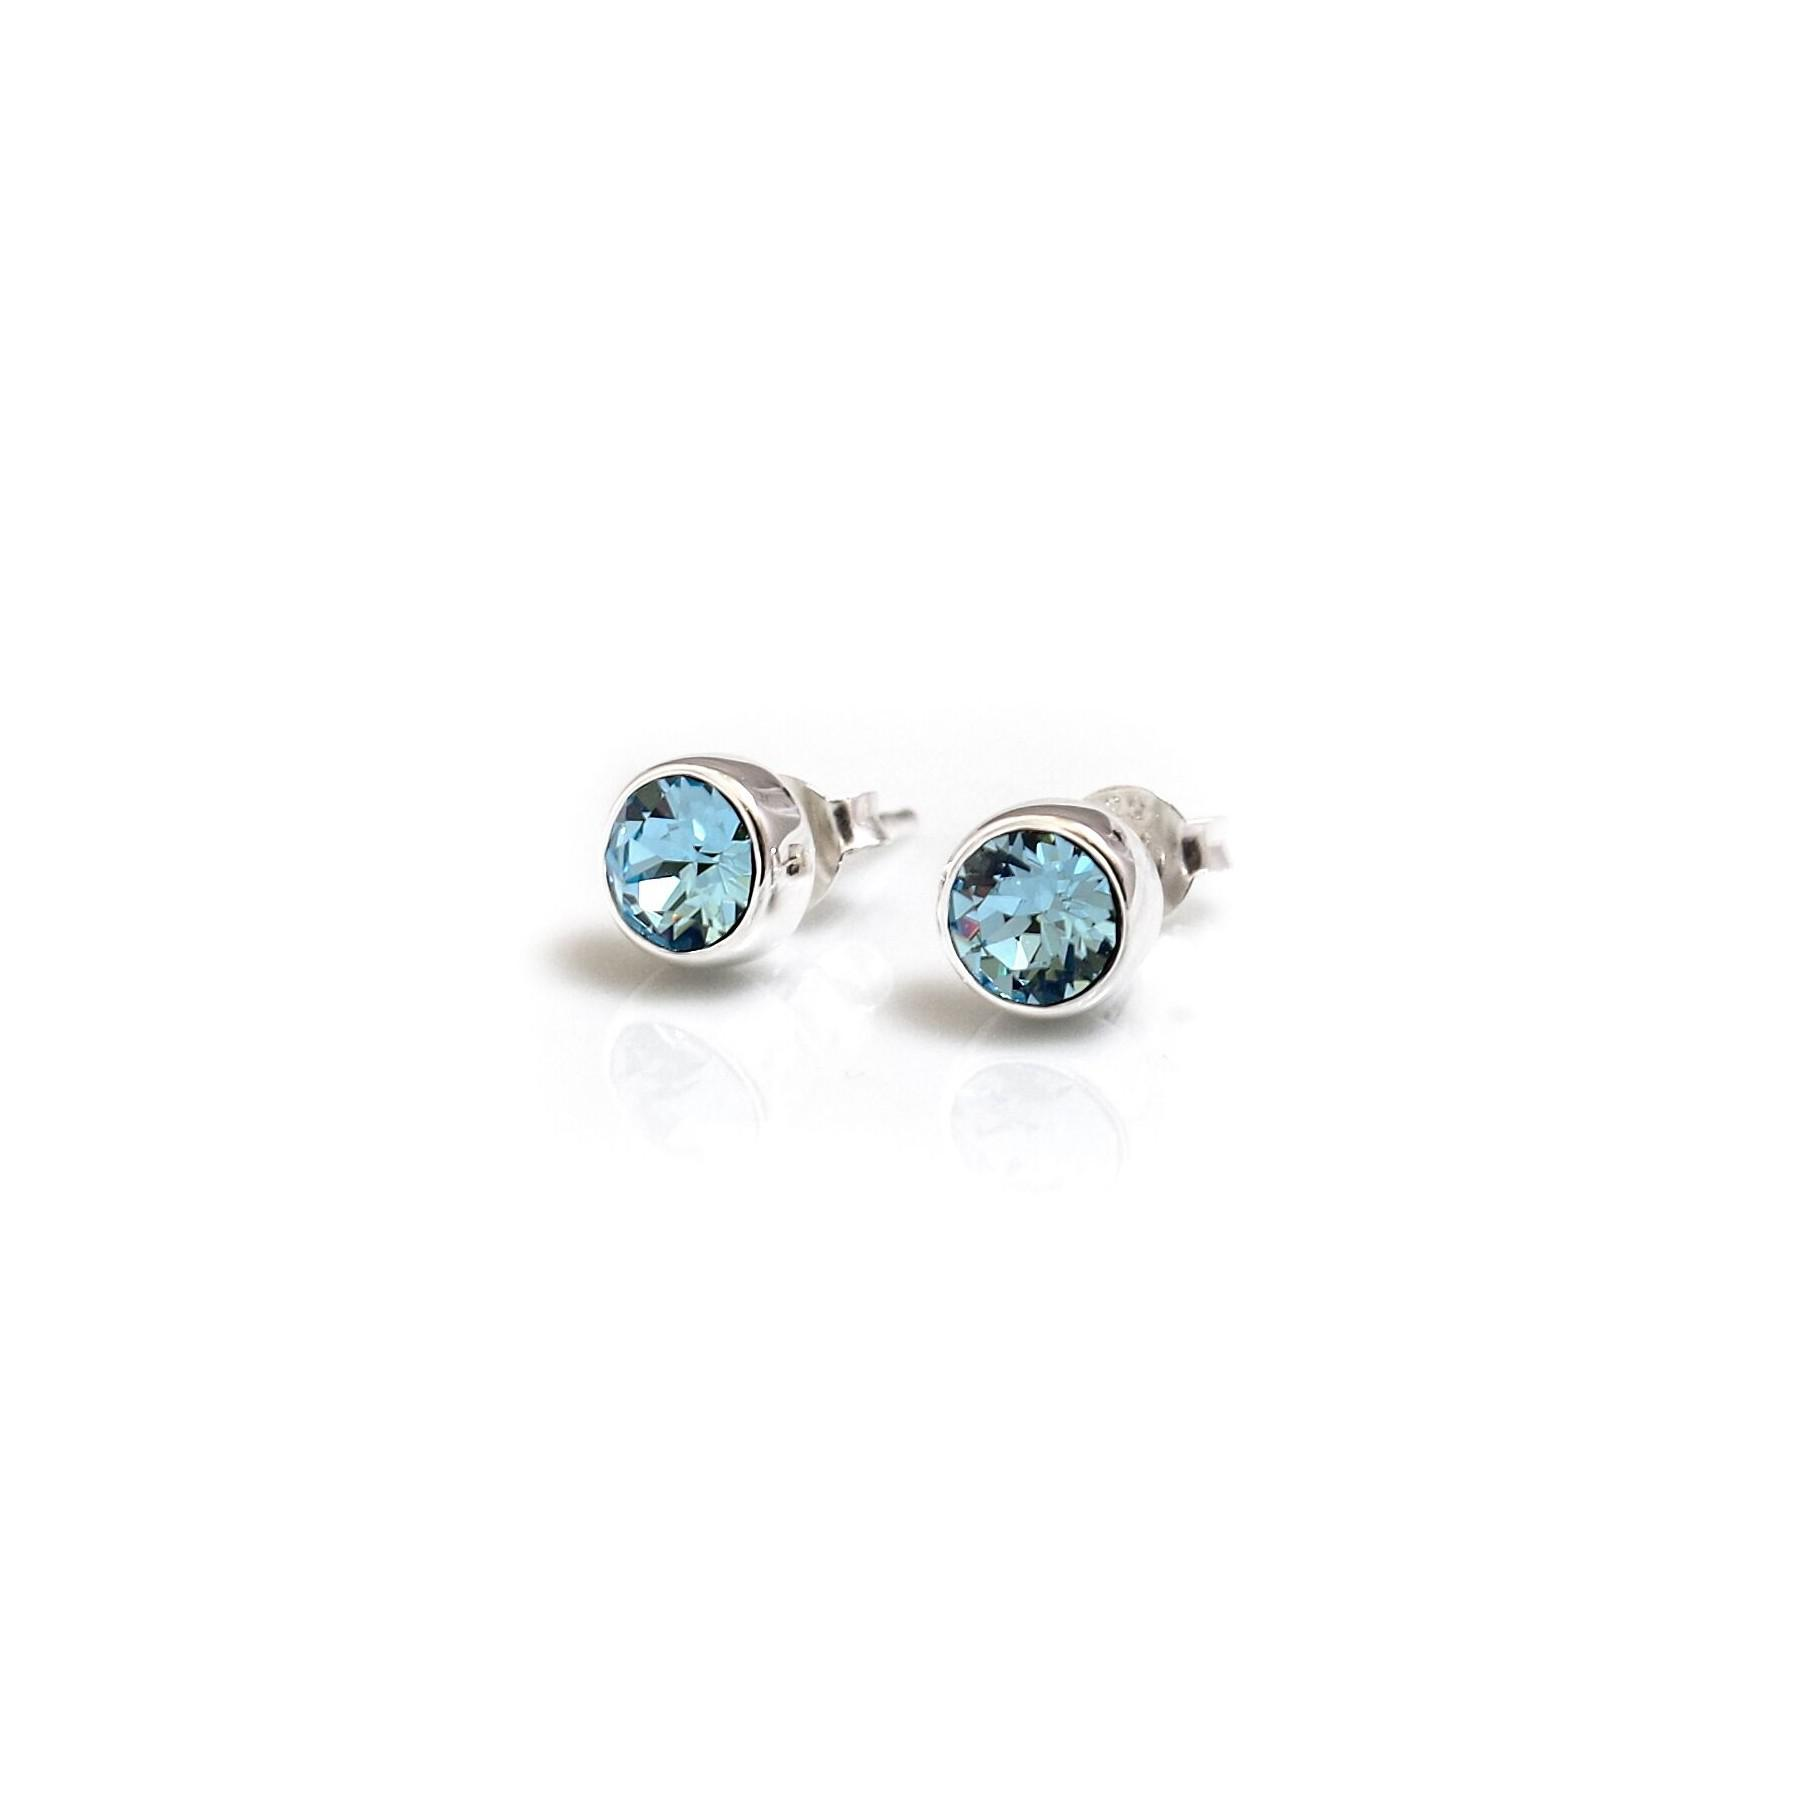 aqua marine gold gemstone uk costco aquamarine earrings p round yellow stud